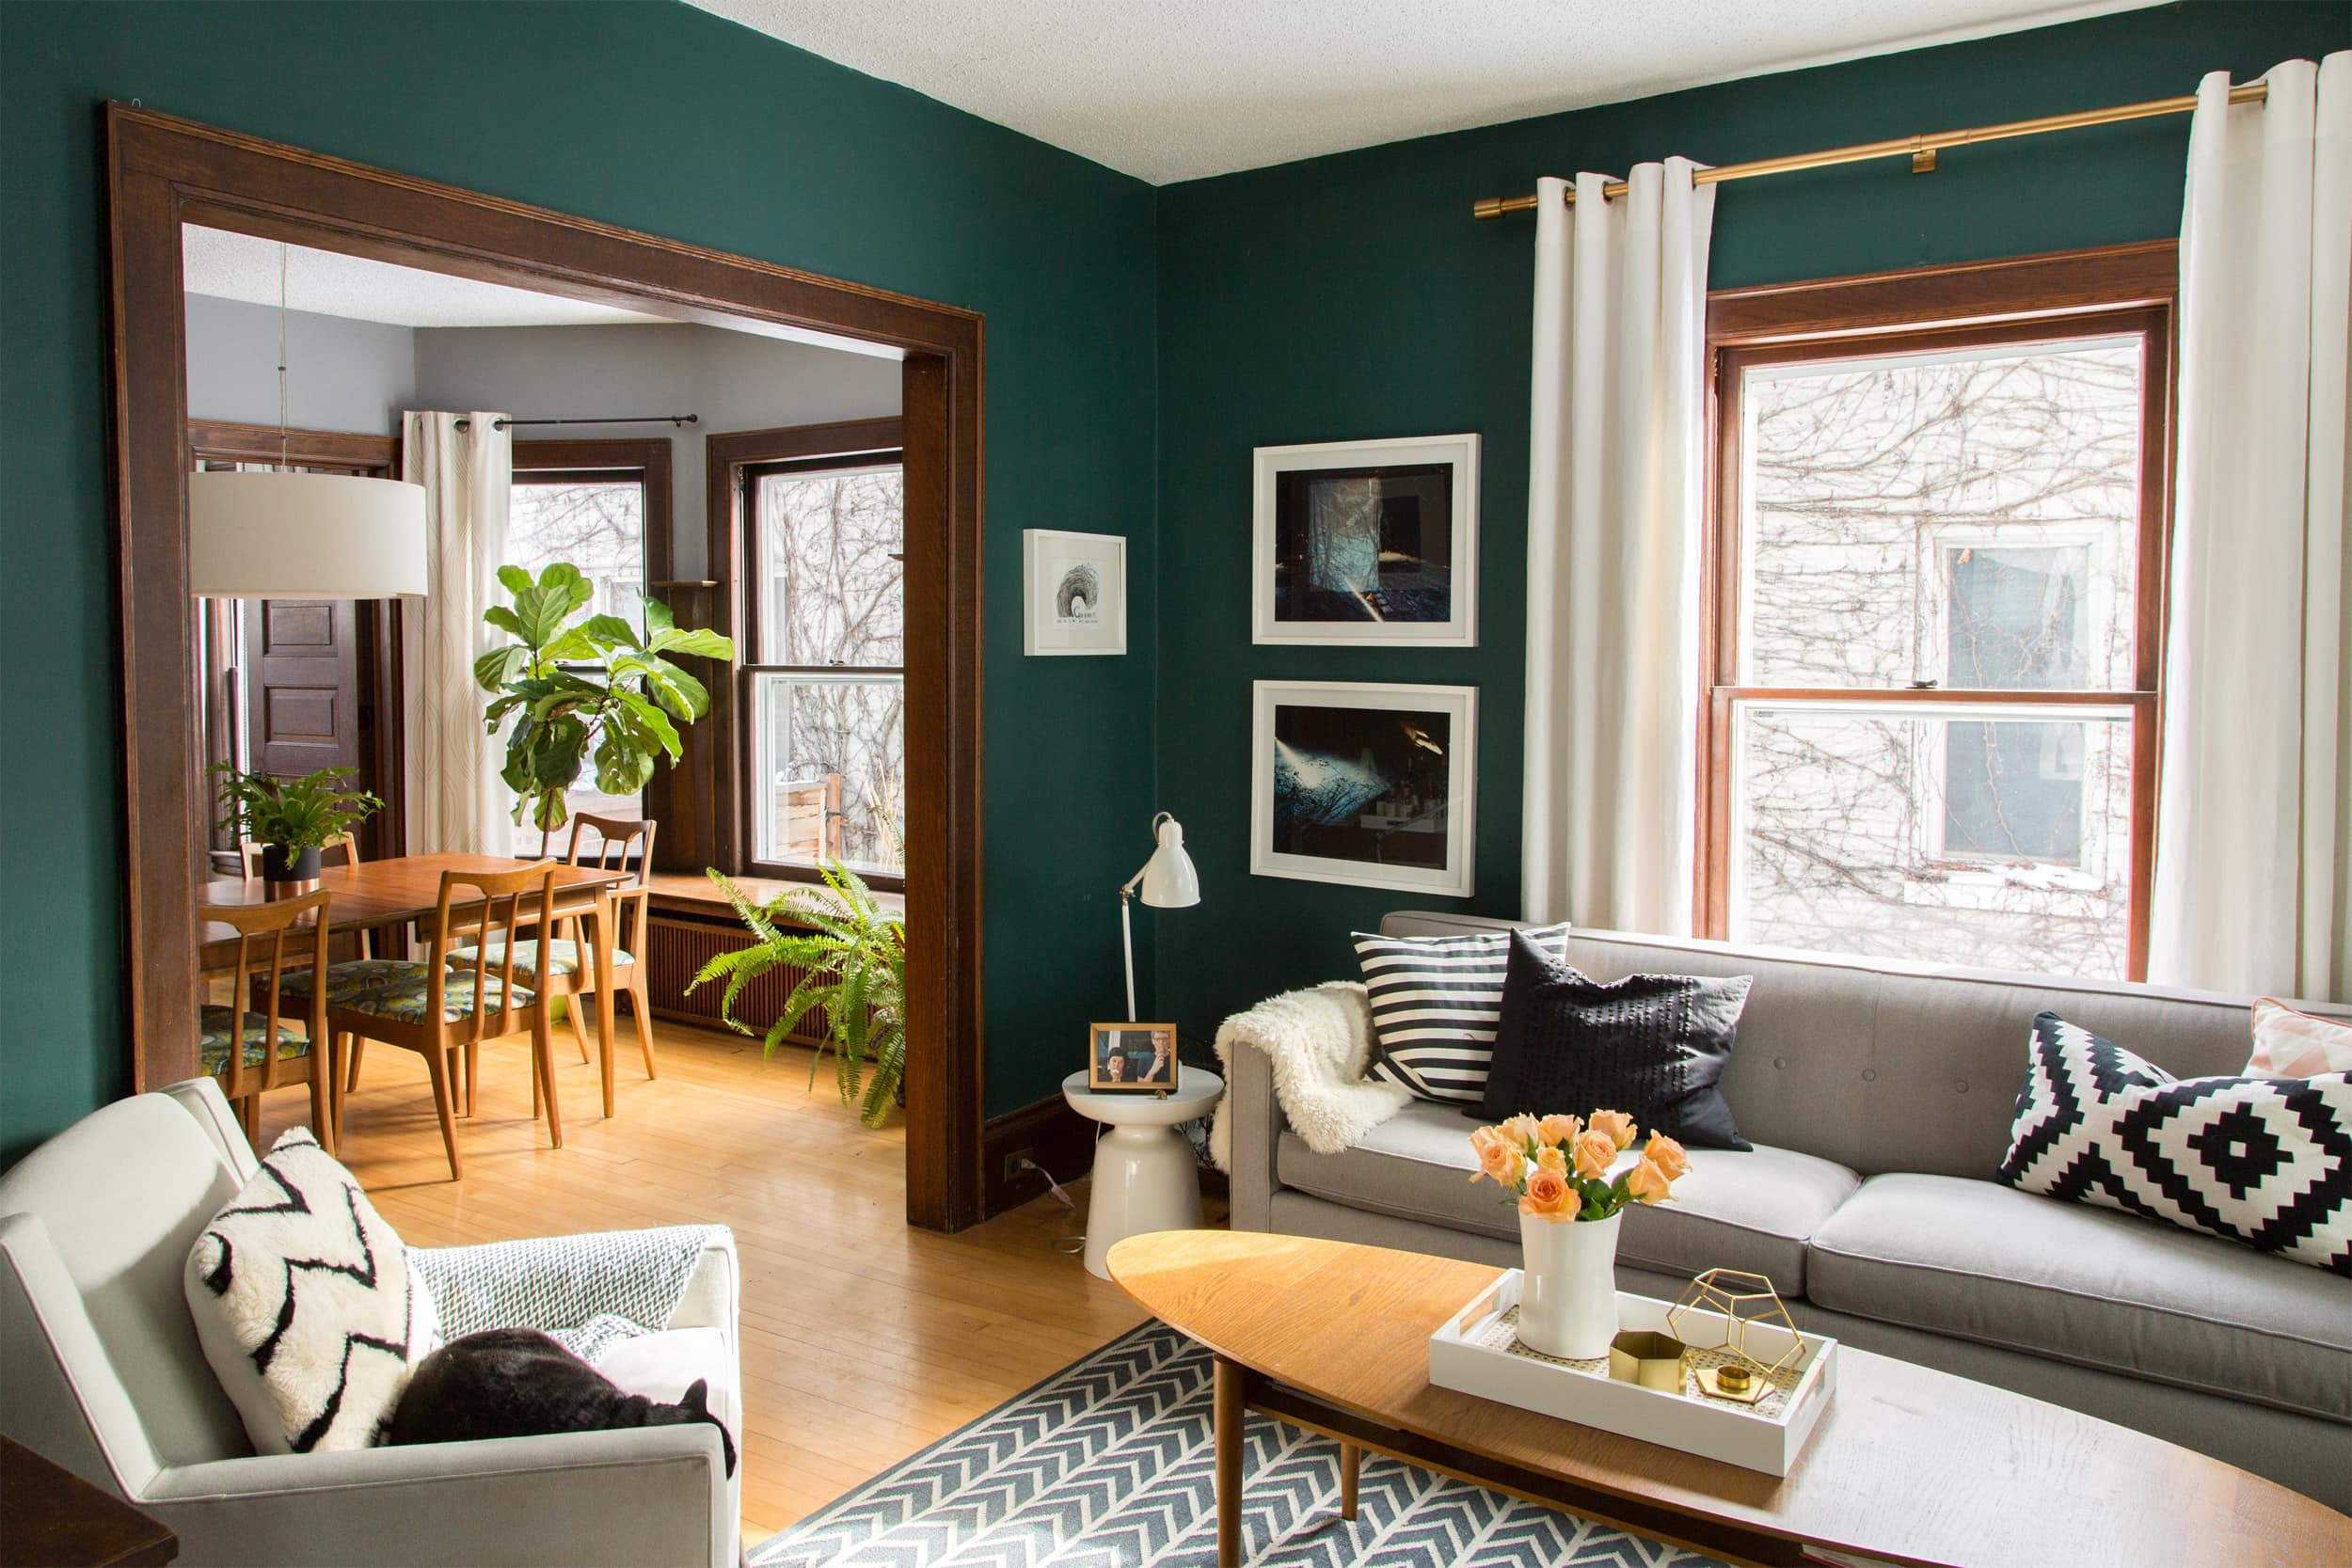 A 106 Year Old Minneapolis House With Chill Scandinavian Vibes